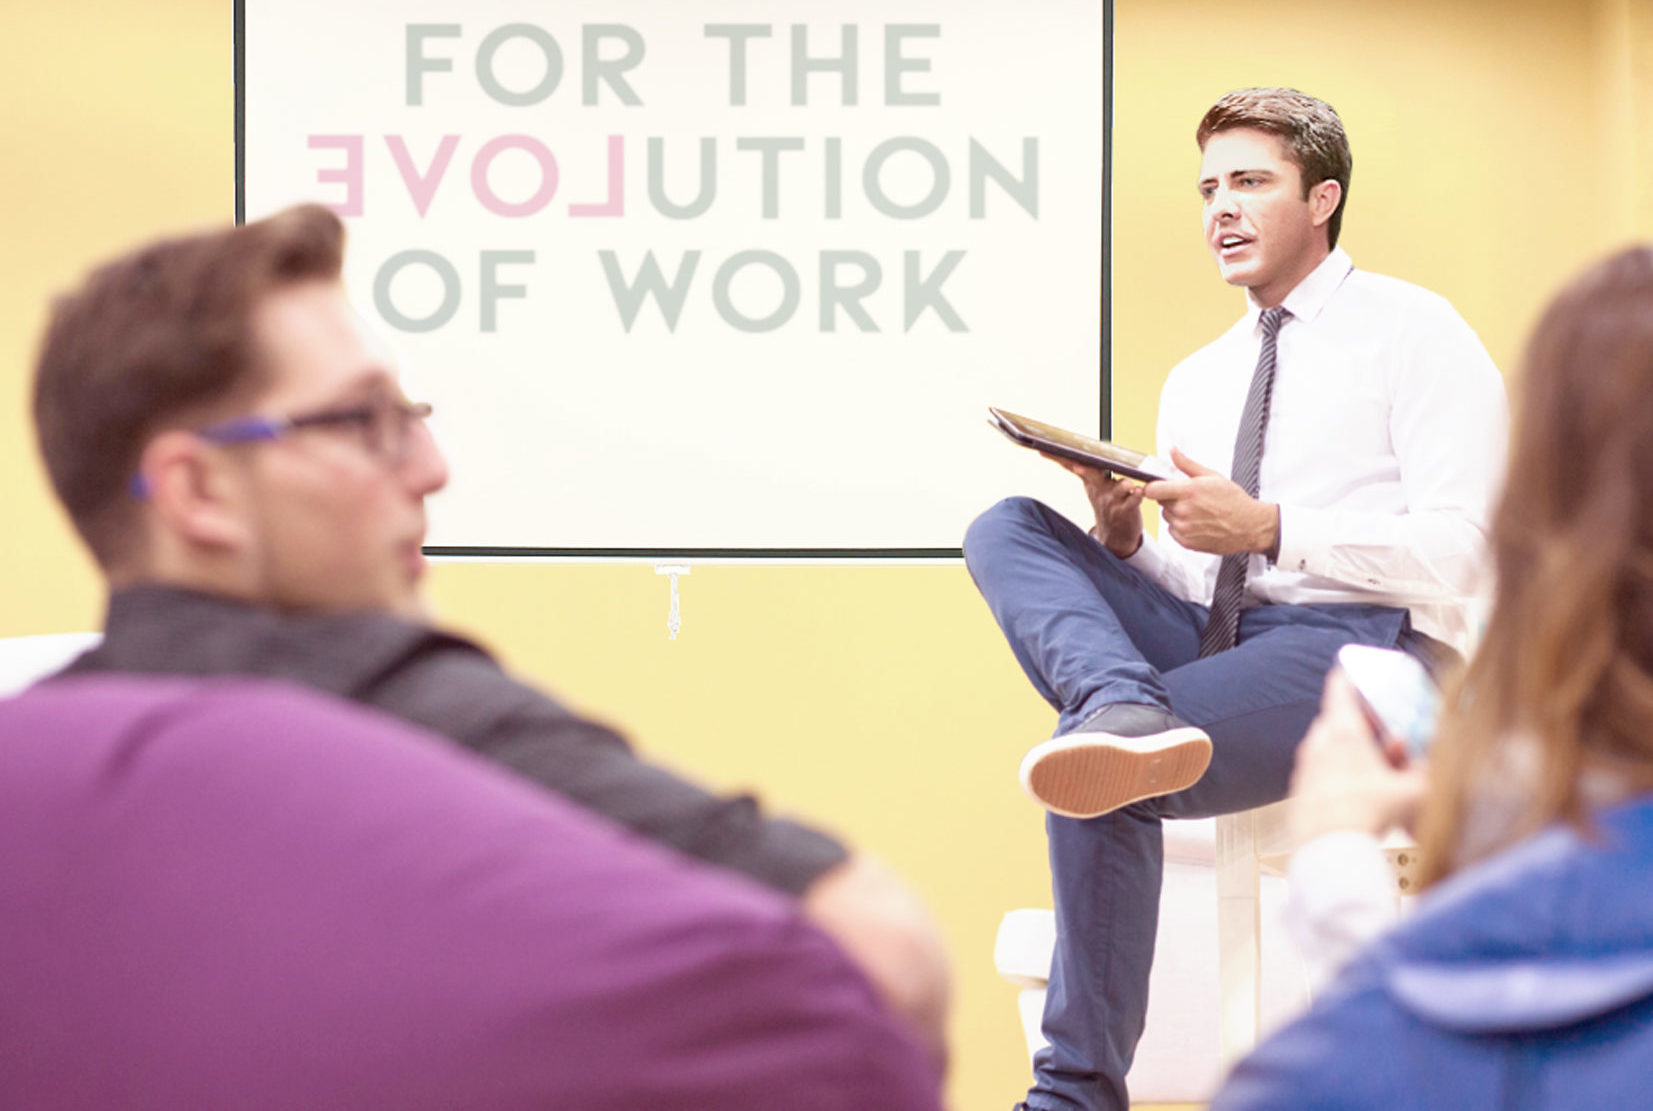 Man Meeting With Other People Talking About Work